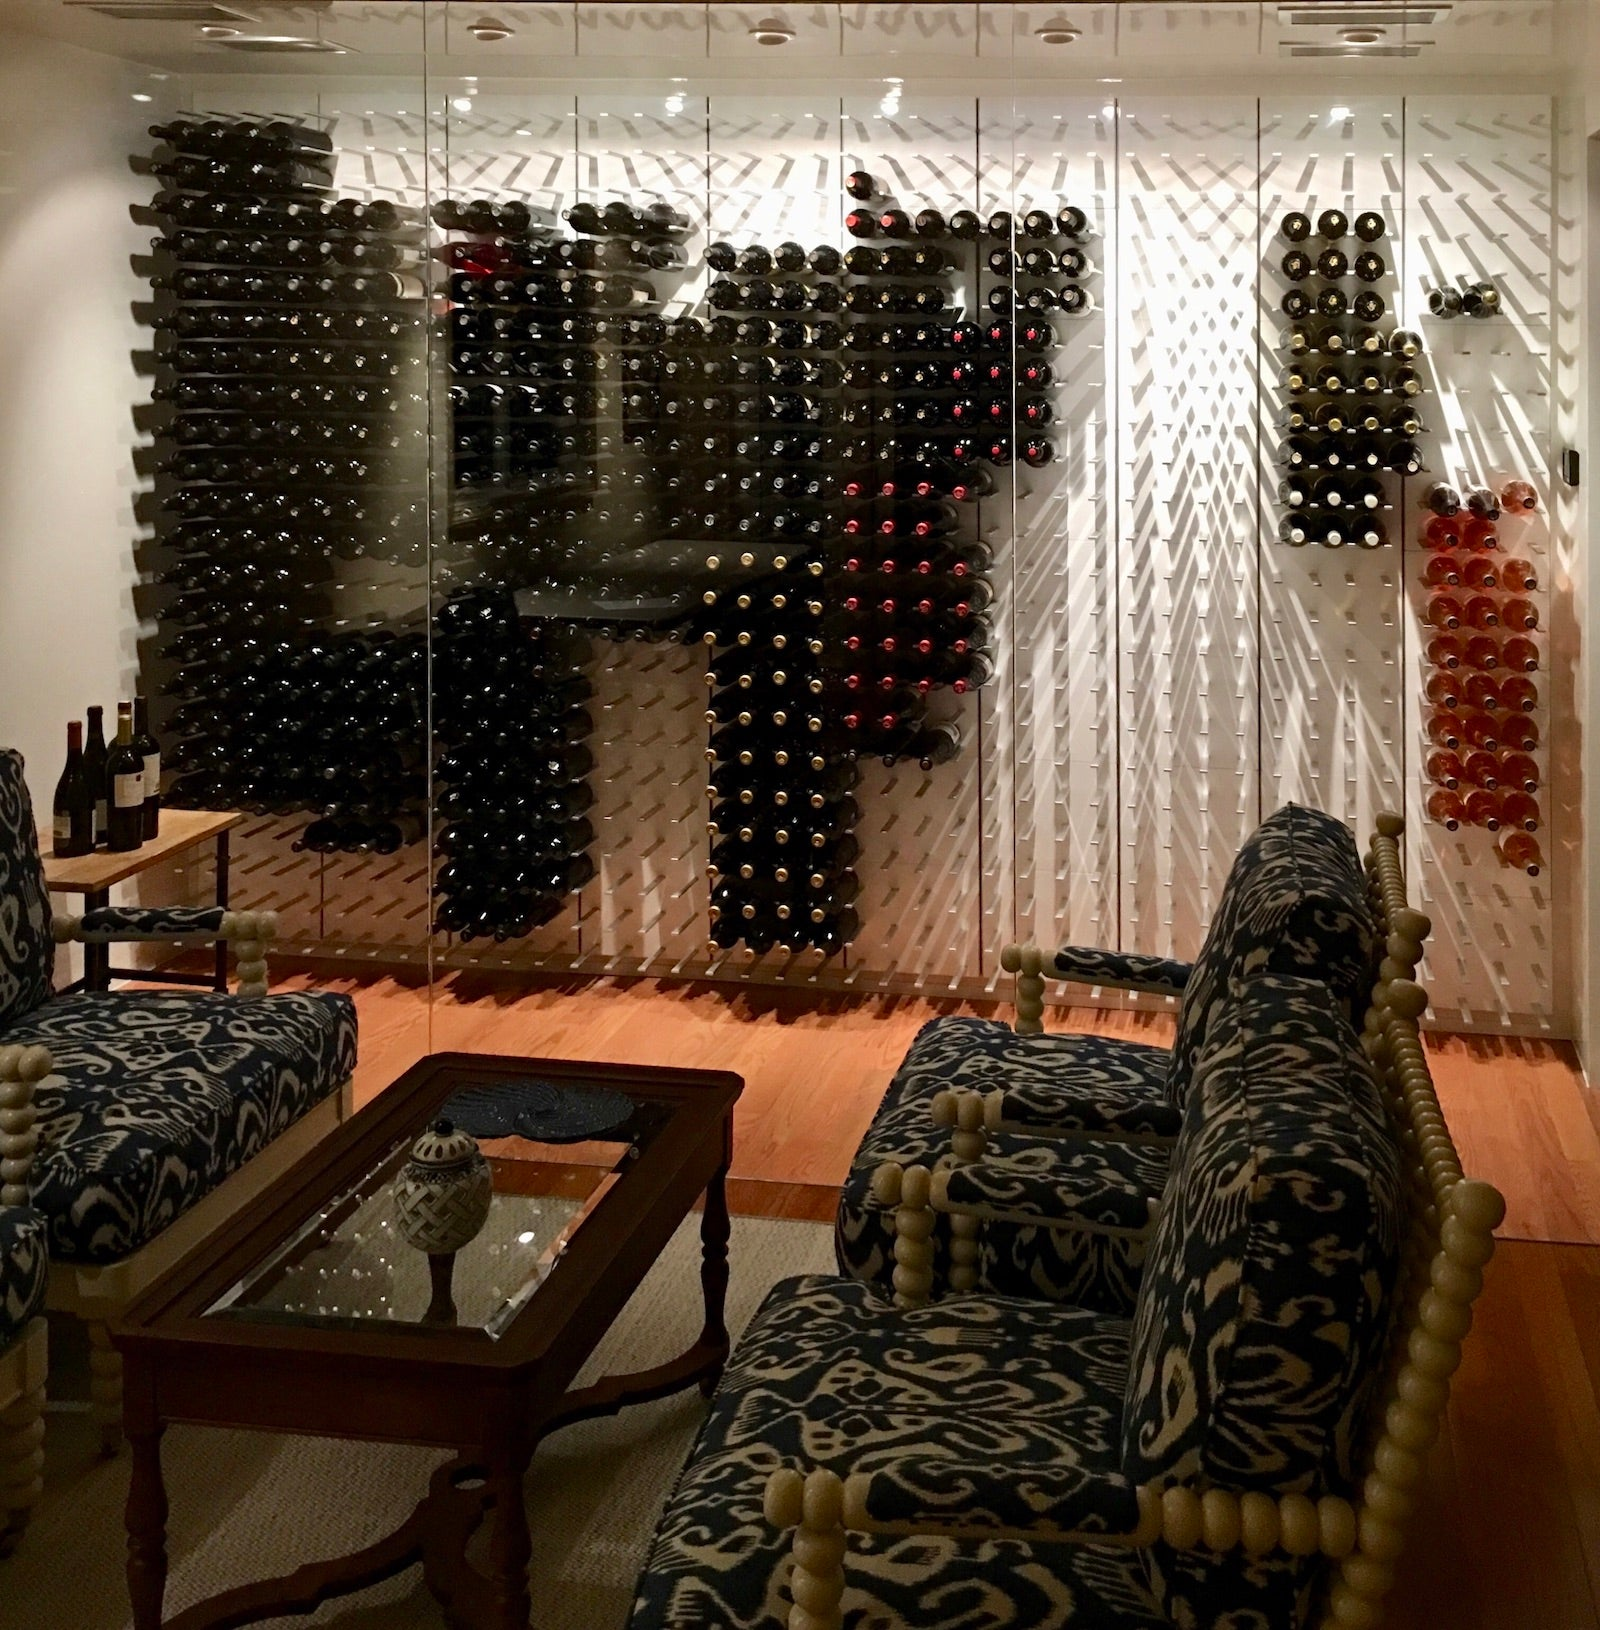 Wall To Wall Glass Wine Cellar   Westhampton Beach Home ...